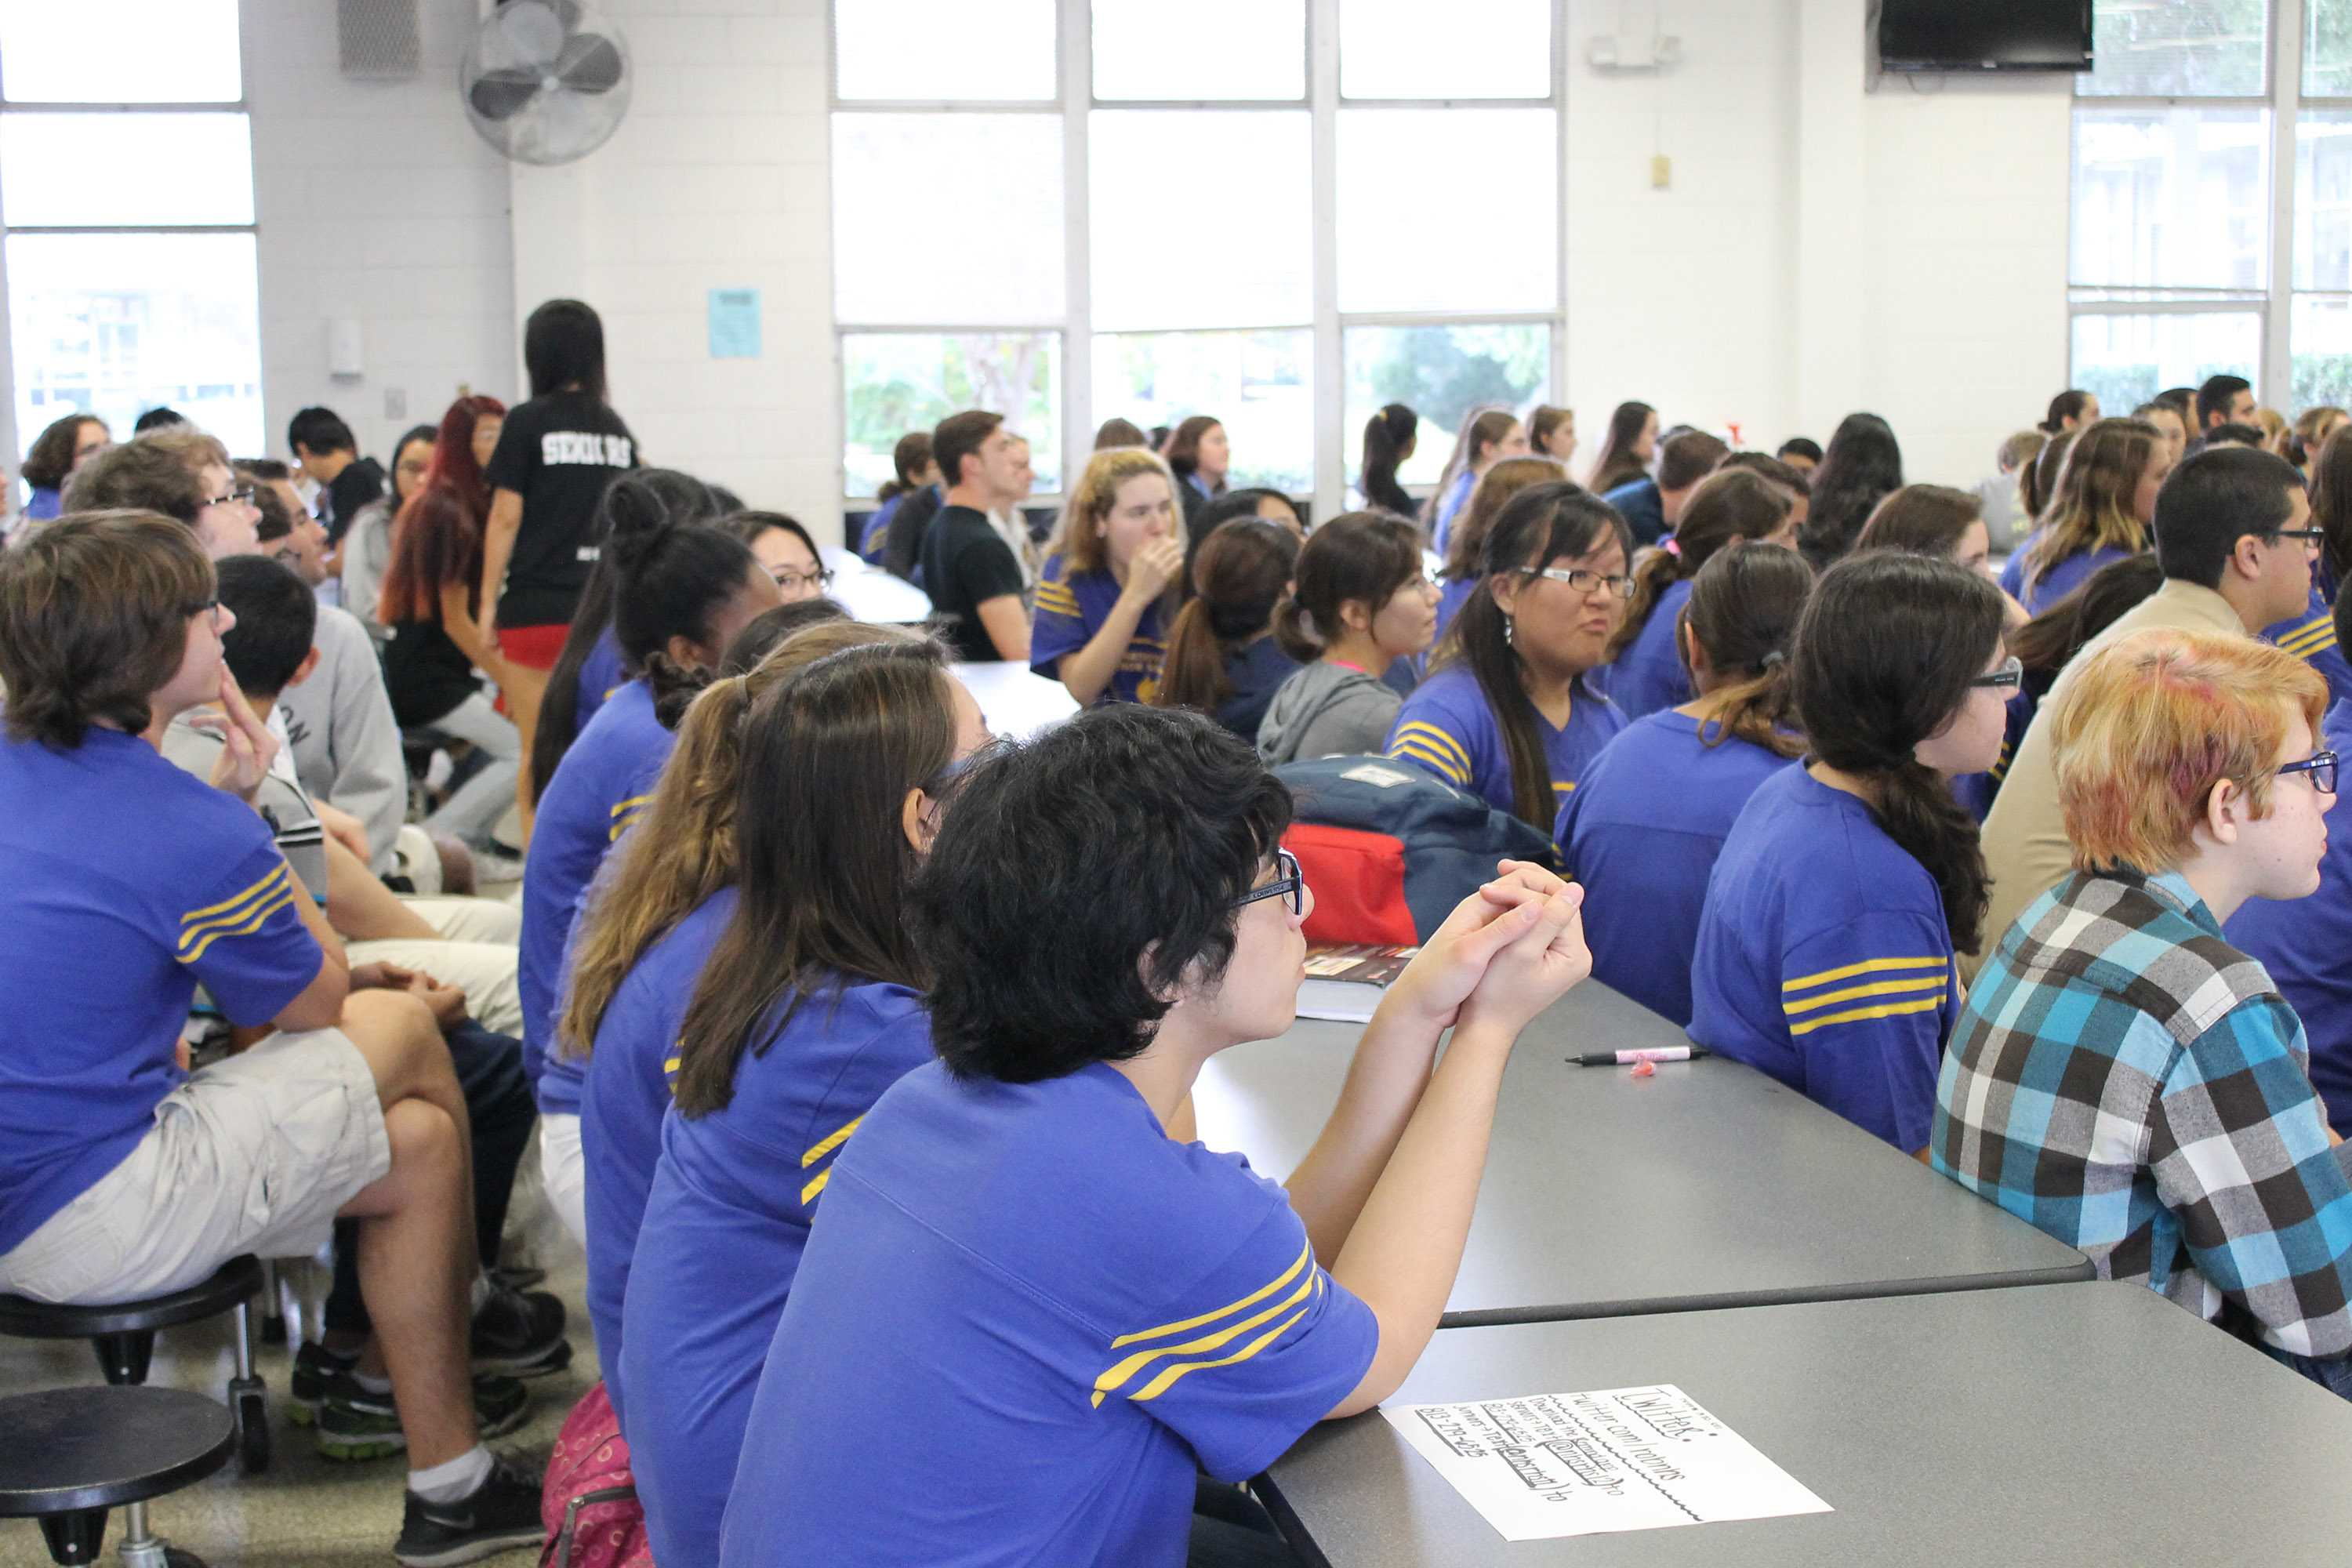 National Honor Society members attend a meeting in the cafeteria.